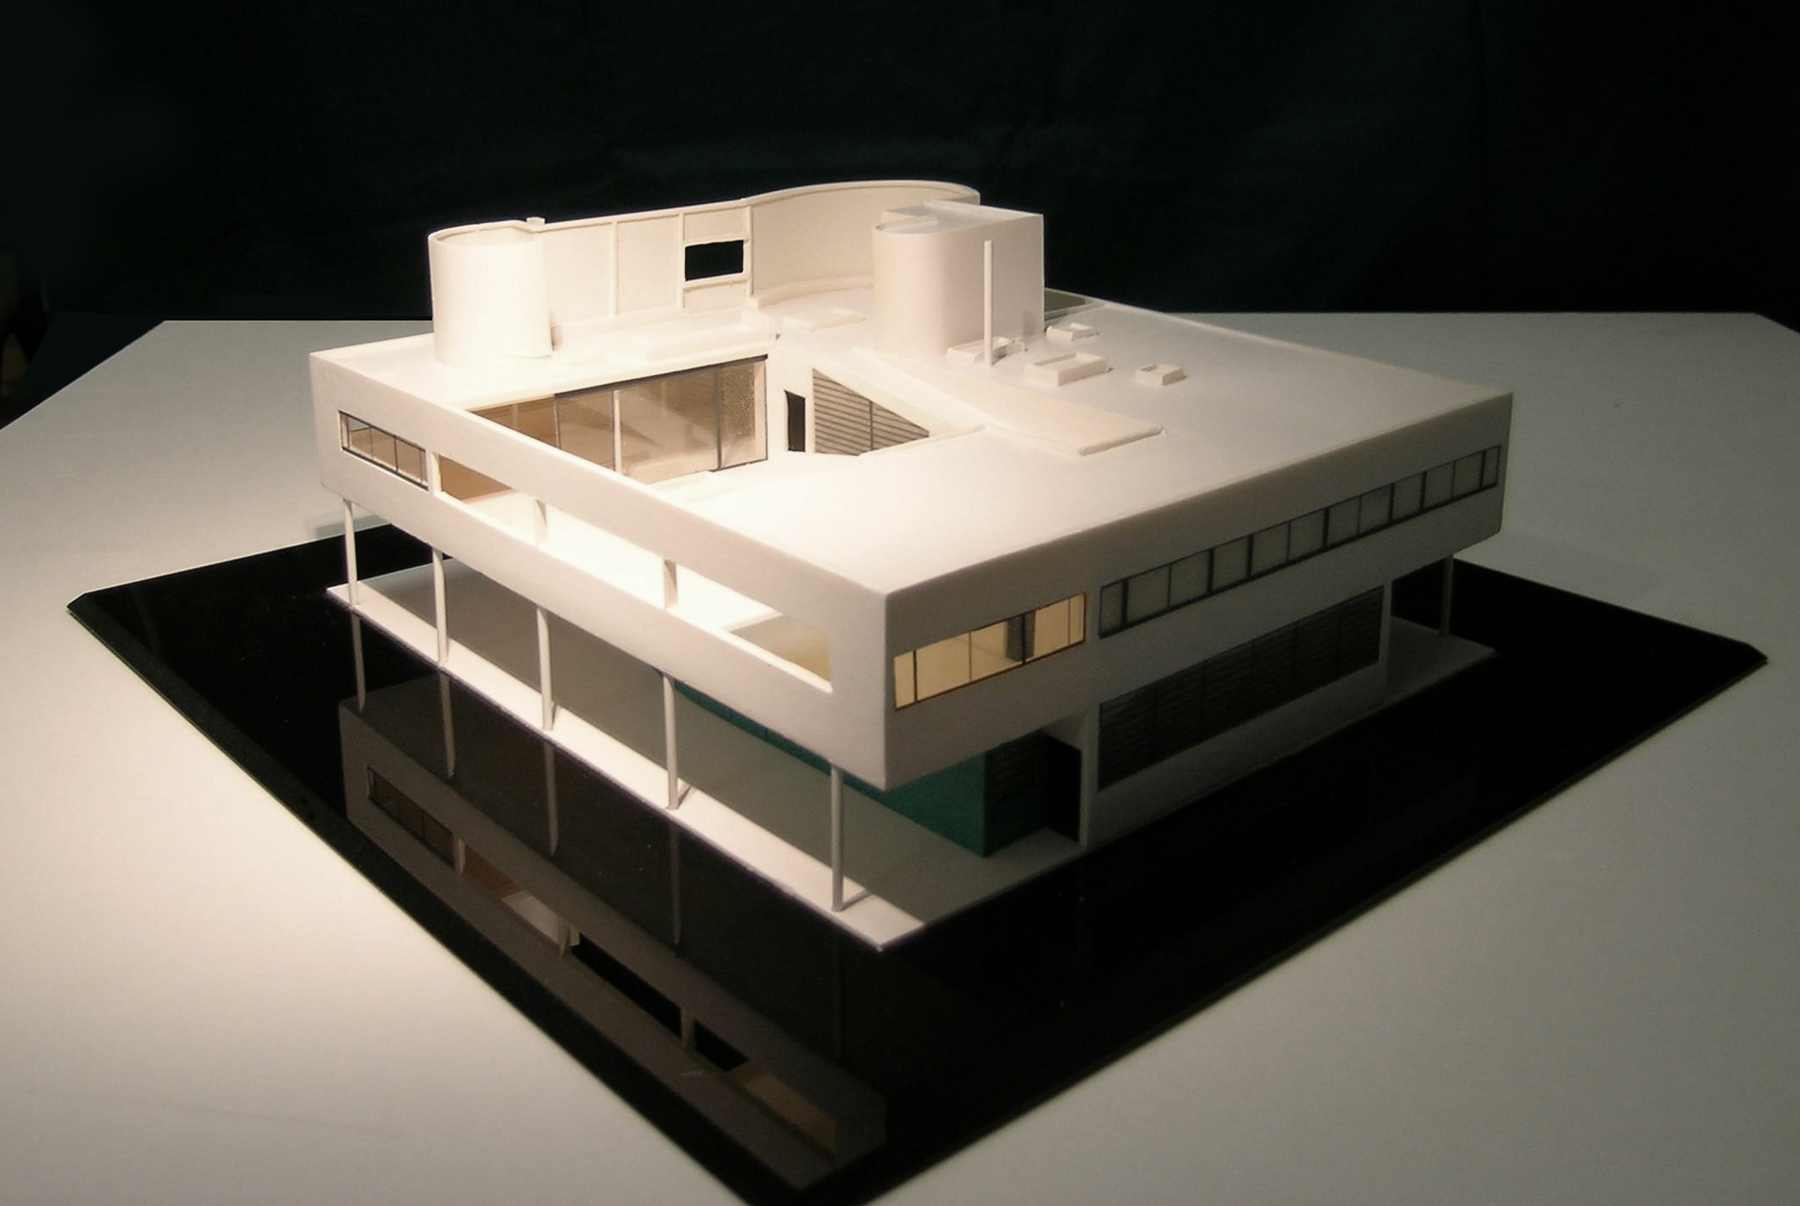 The model of the villa savoye for Arredi interni dwg